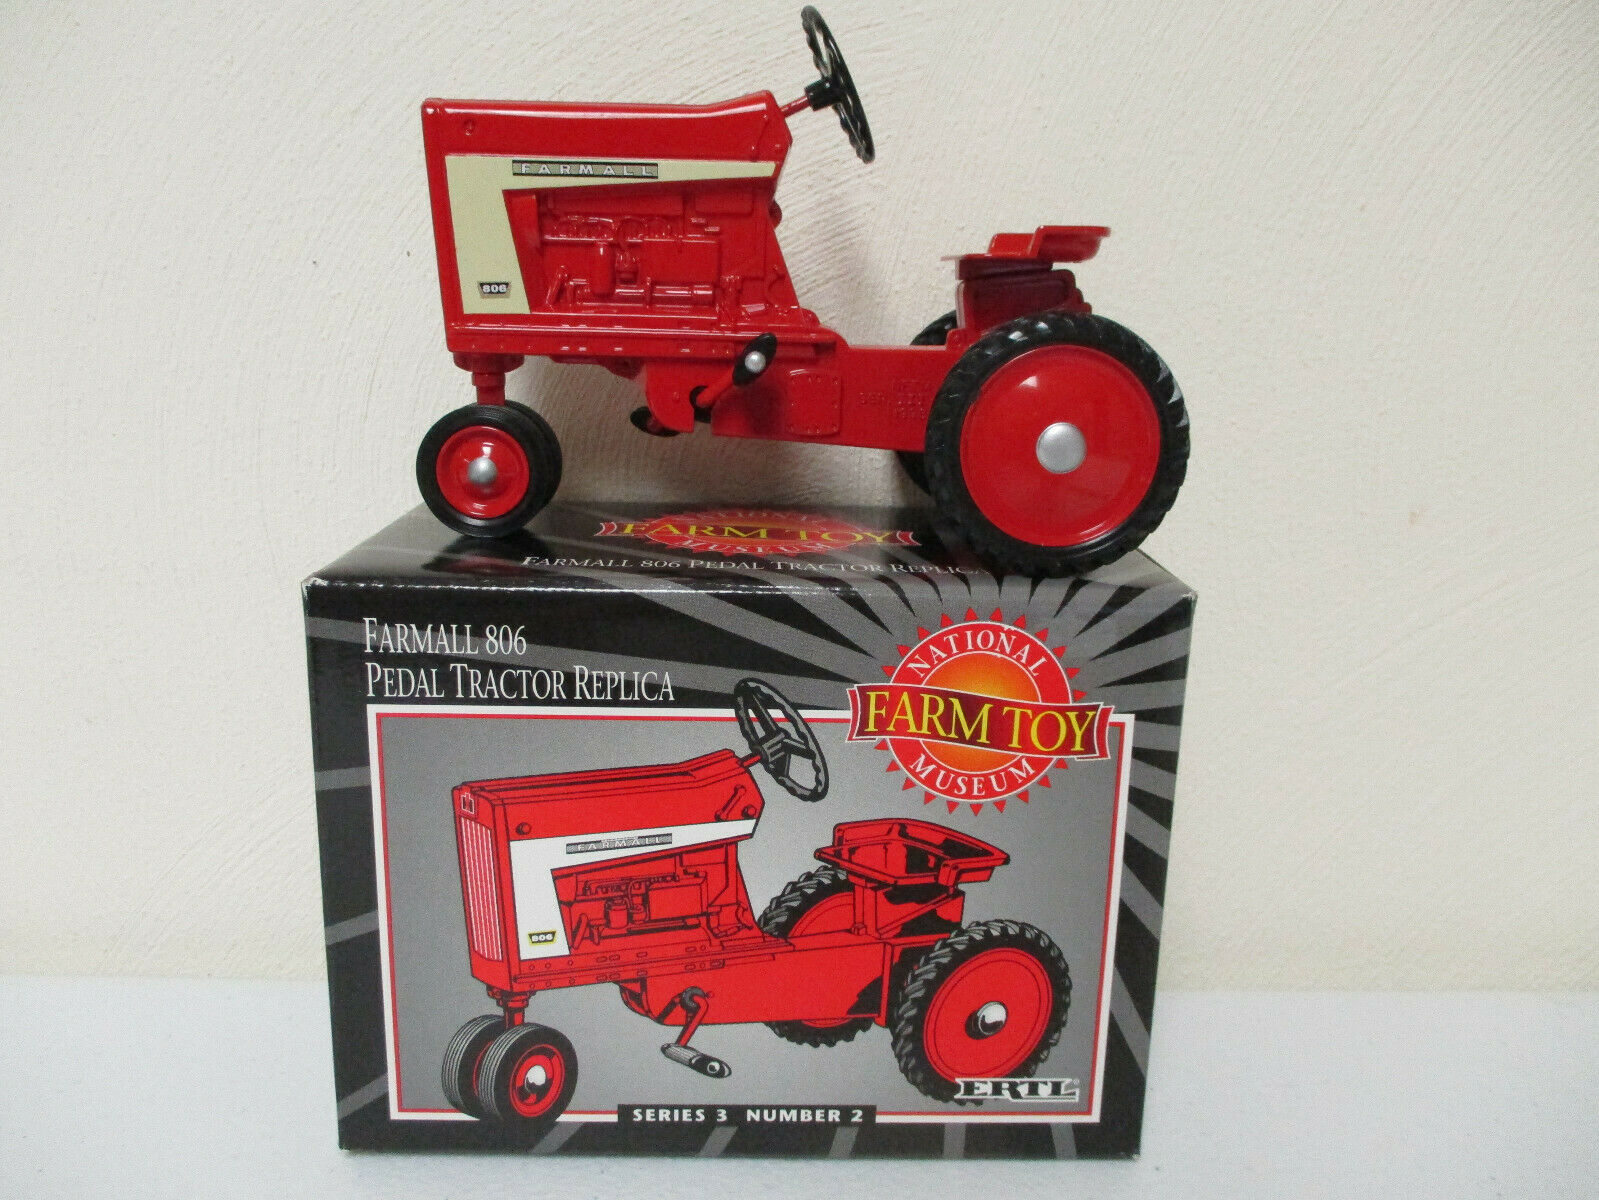 Farmall 806 Pedal Tractor REPLICA National Farm Toy Museum Edition by Ertl  !